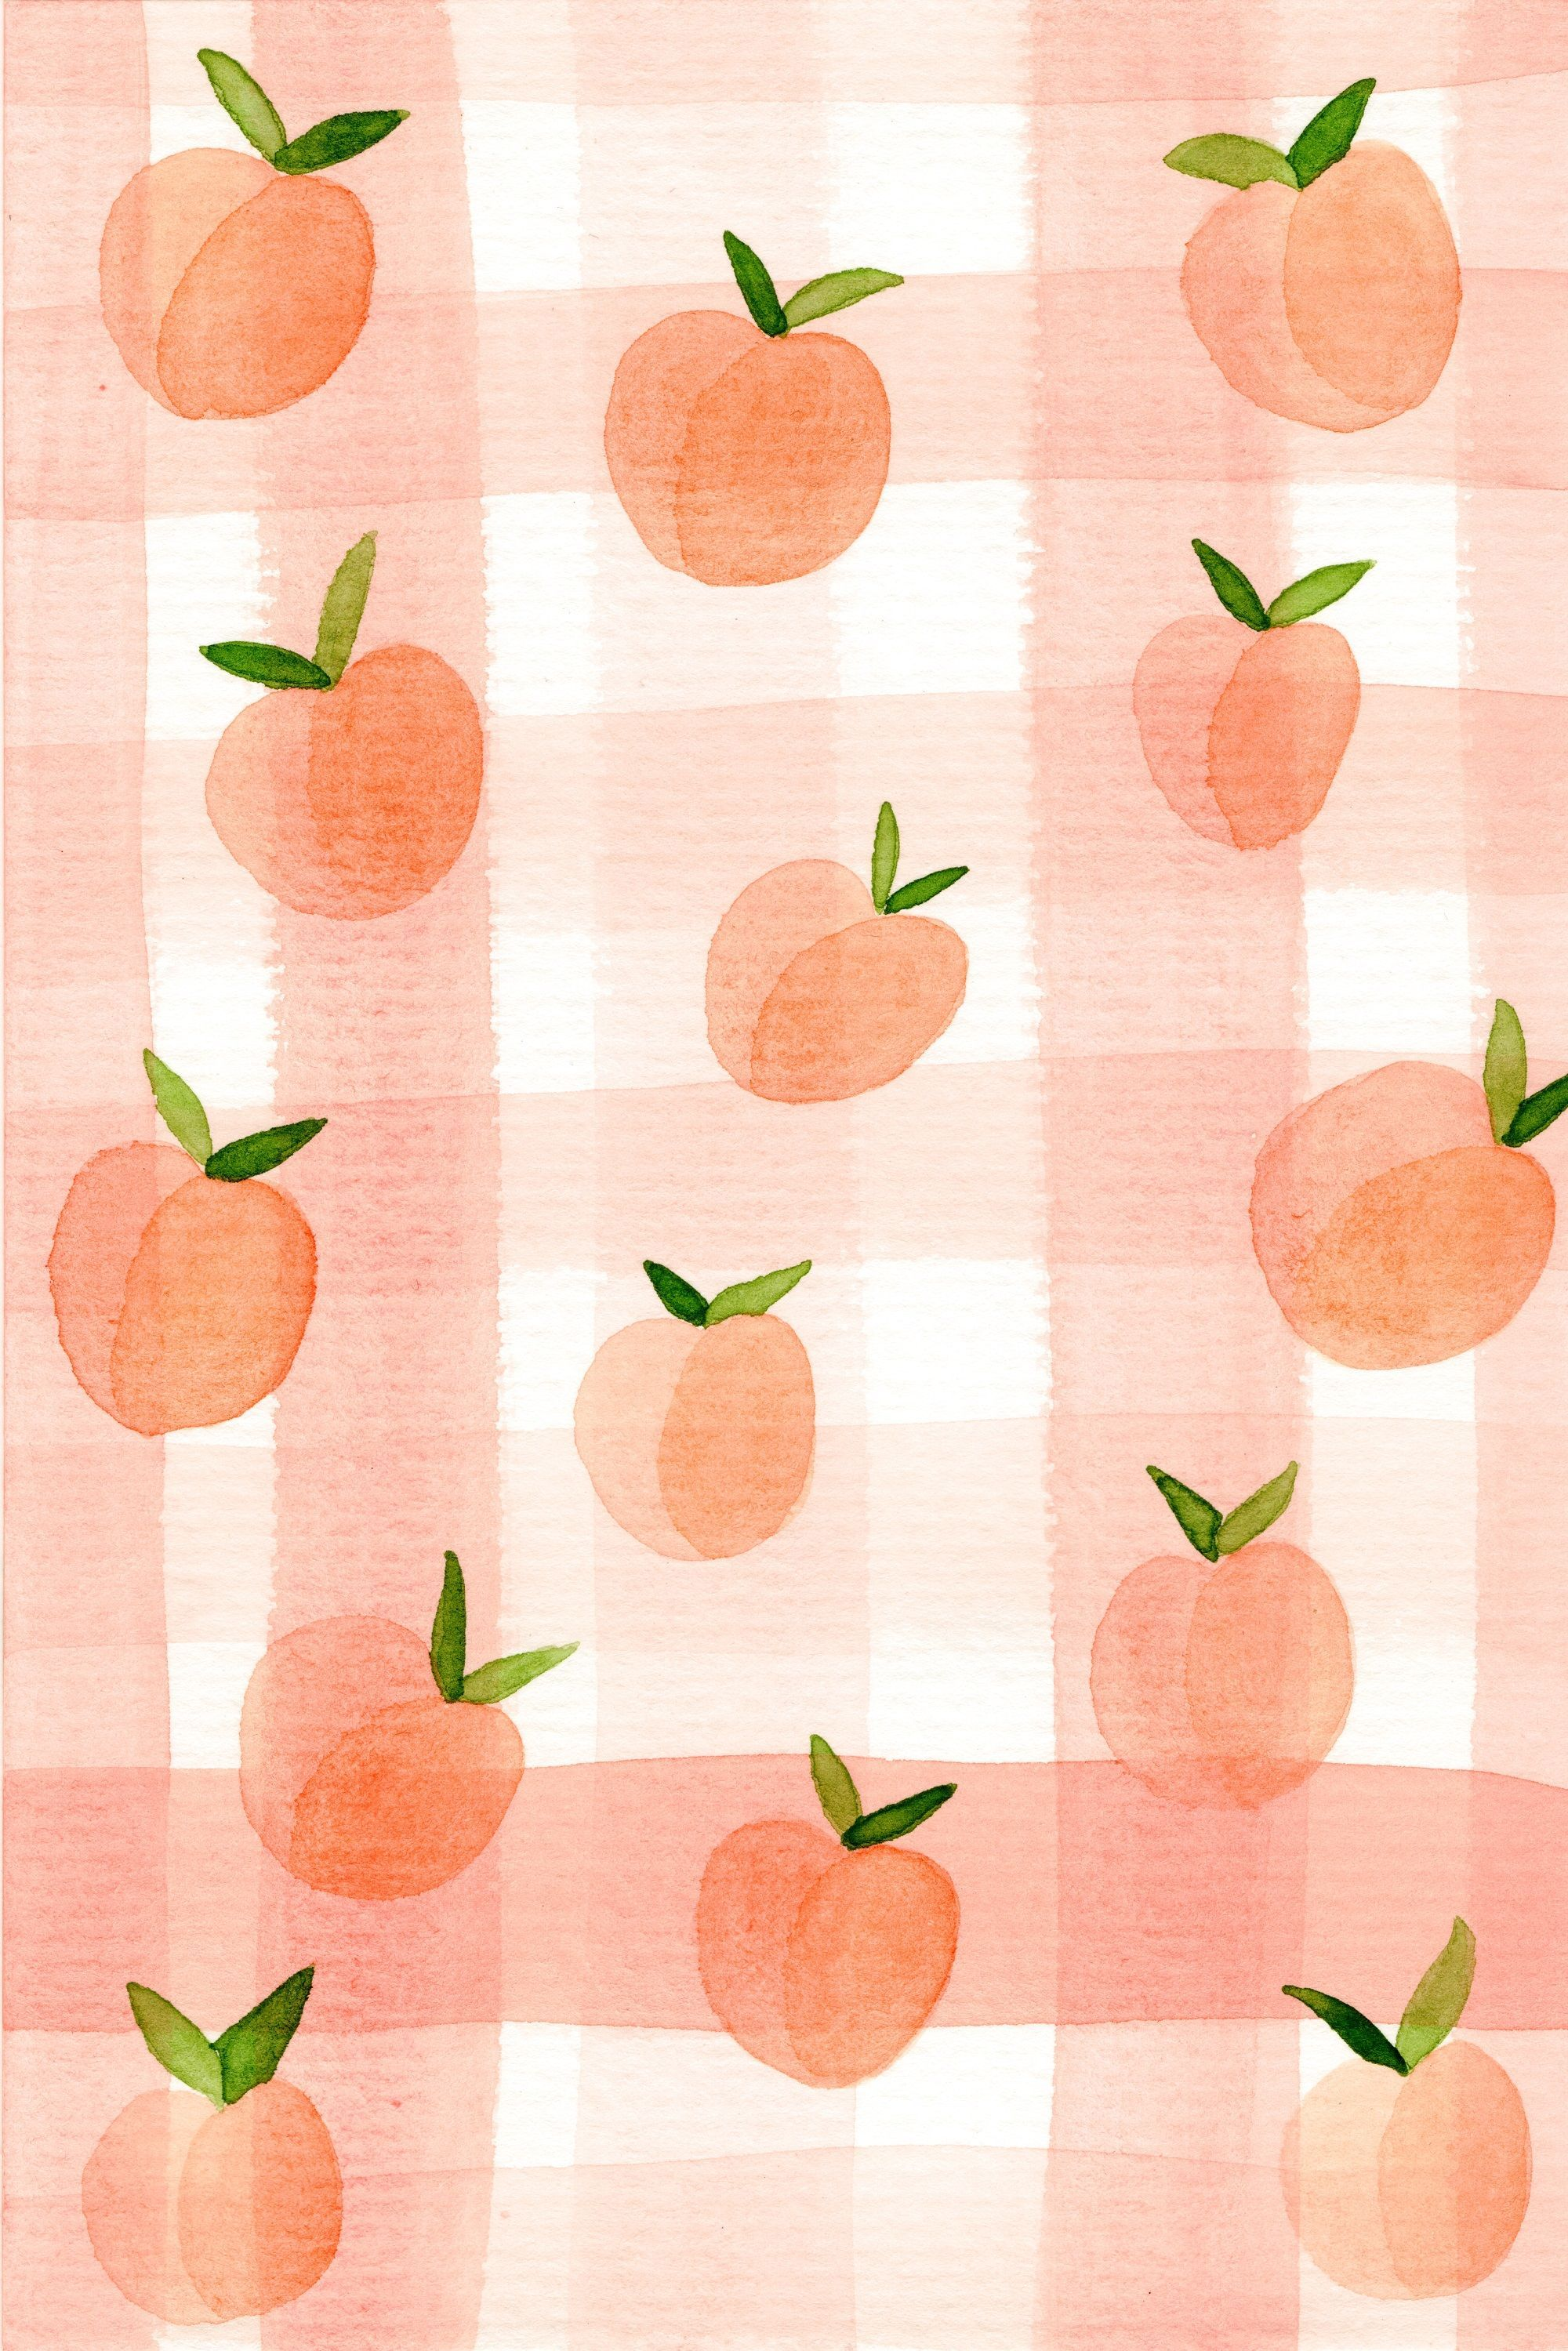 peach iphone wallpapers top free peach iphone backgrounds wallpaperaccess peach iphone wallpapers top free